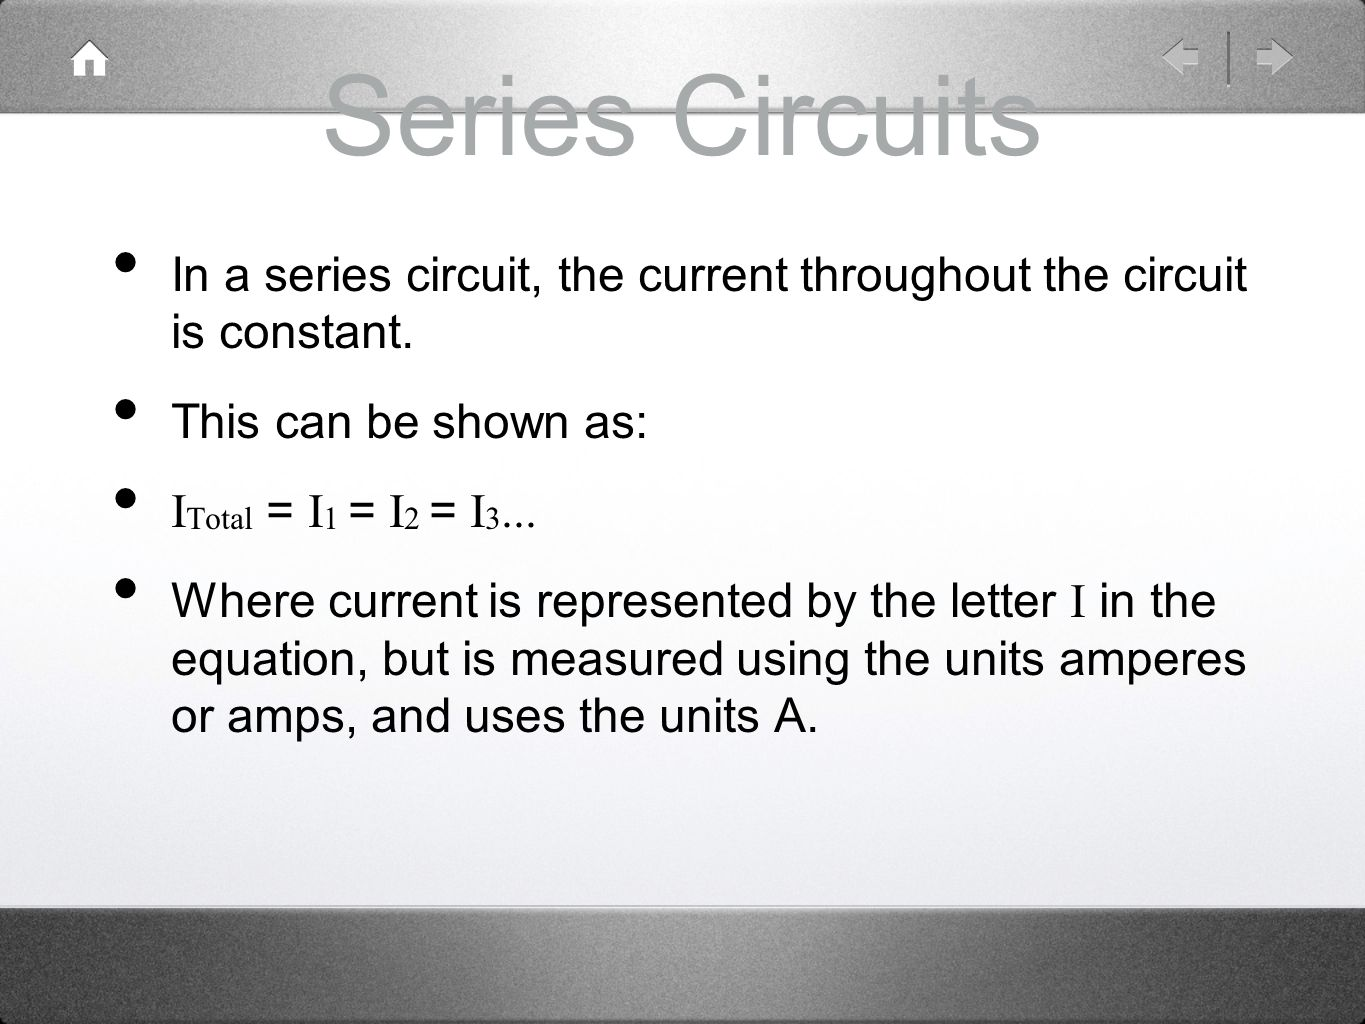 Series Circuits In a series circuit, the current throughout the circuit is constant. This can be shown as: